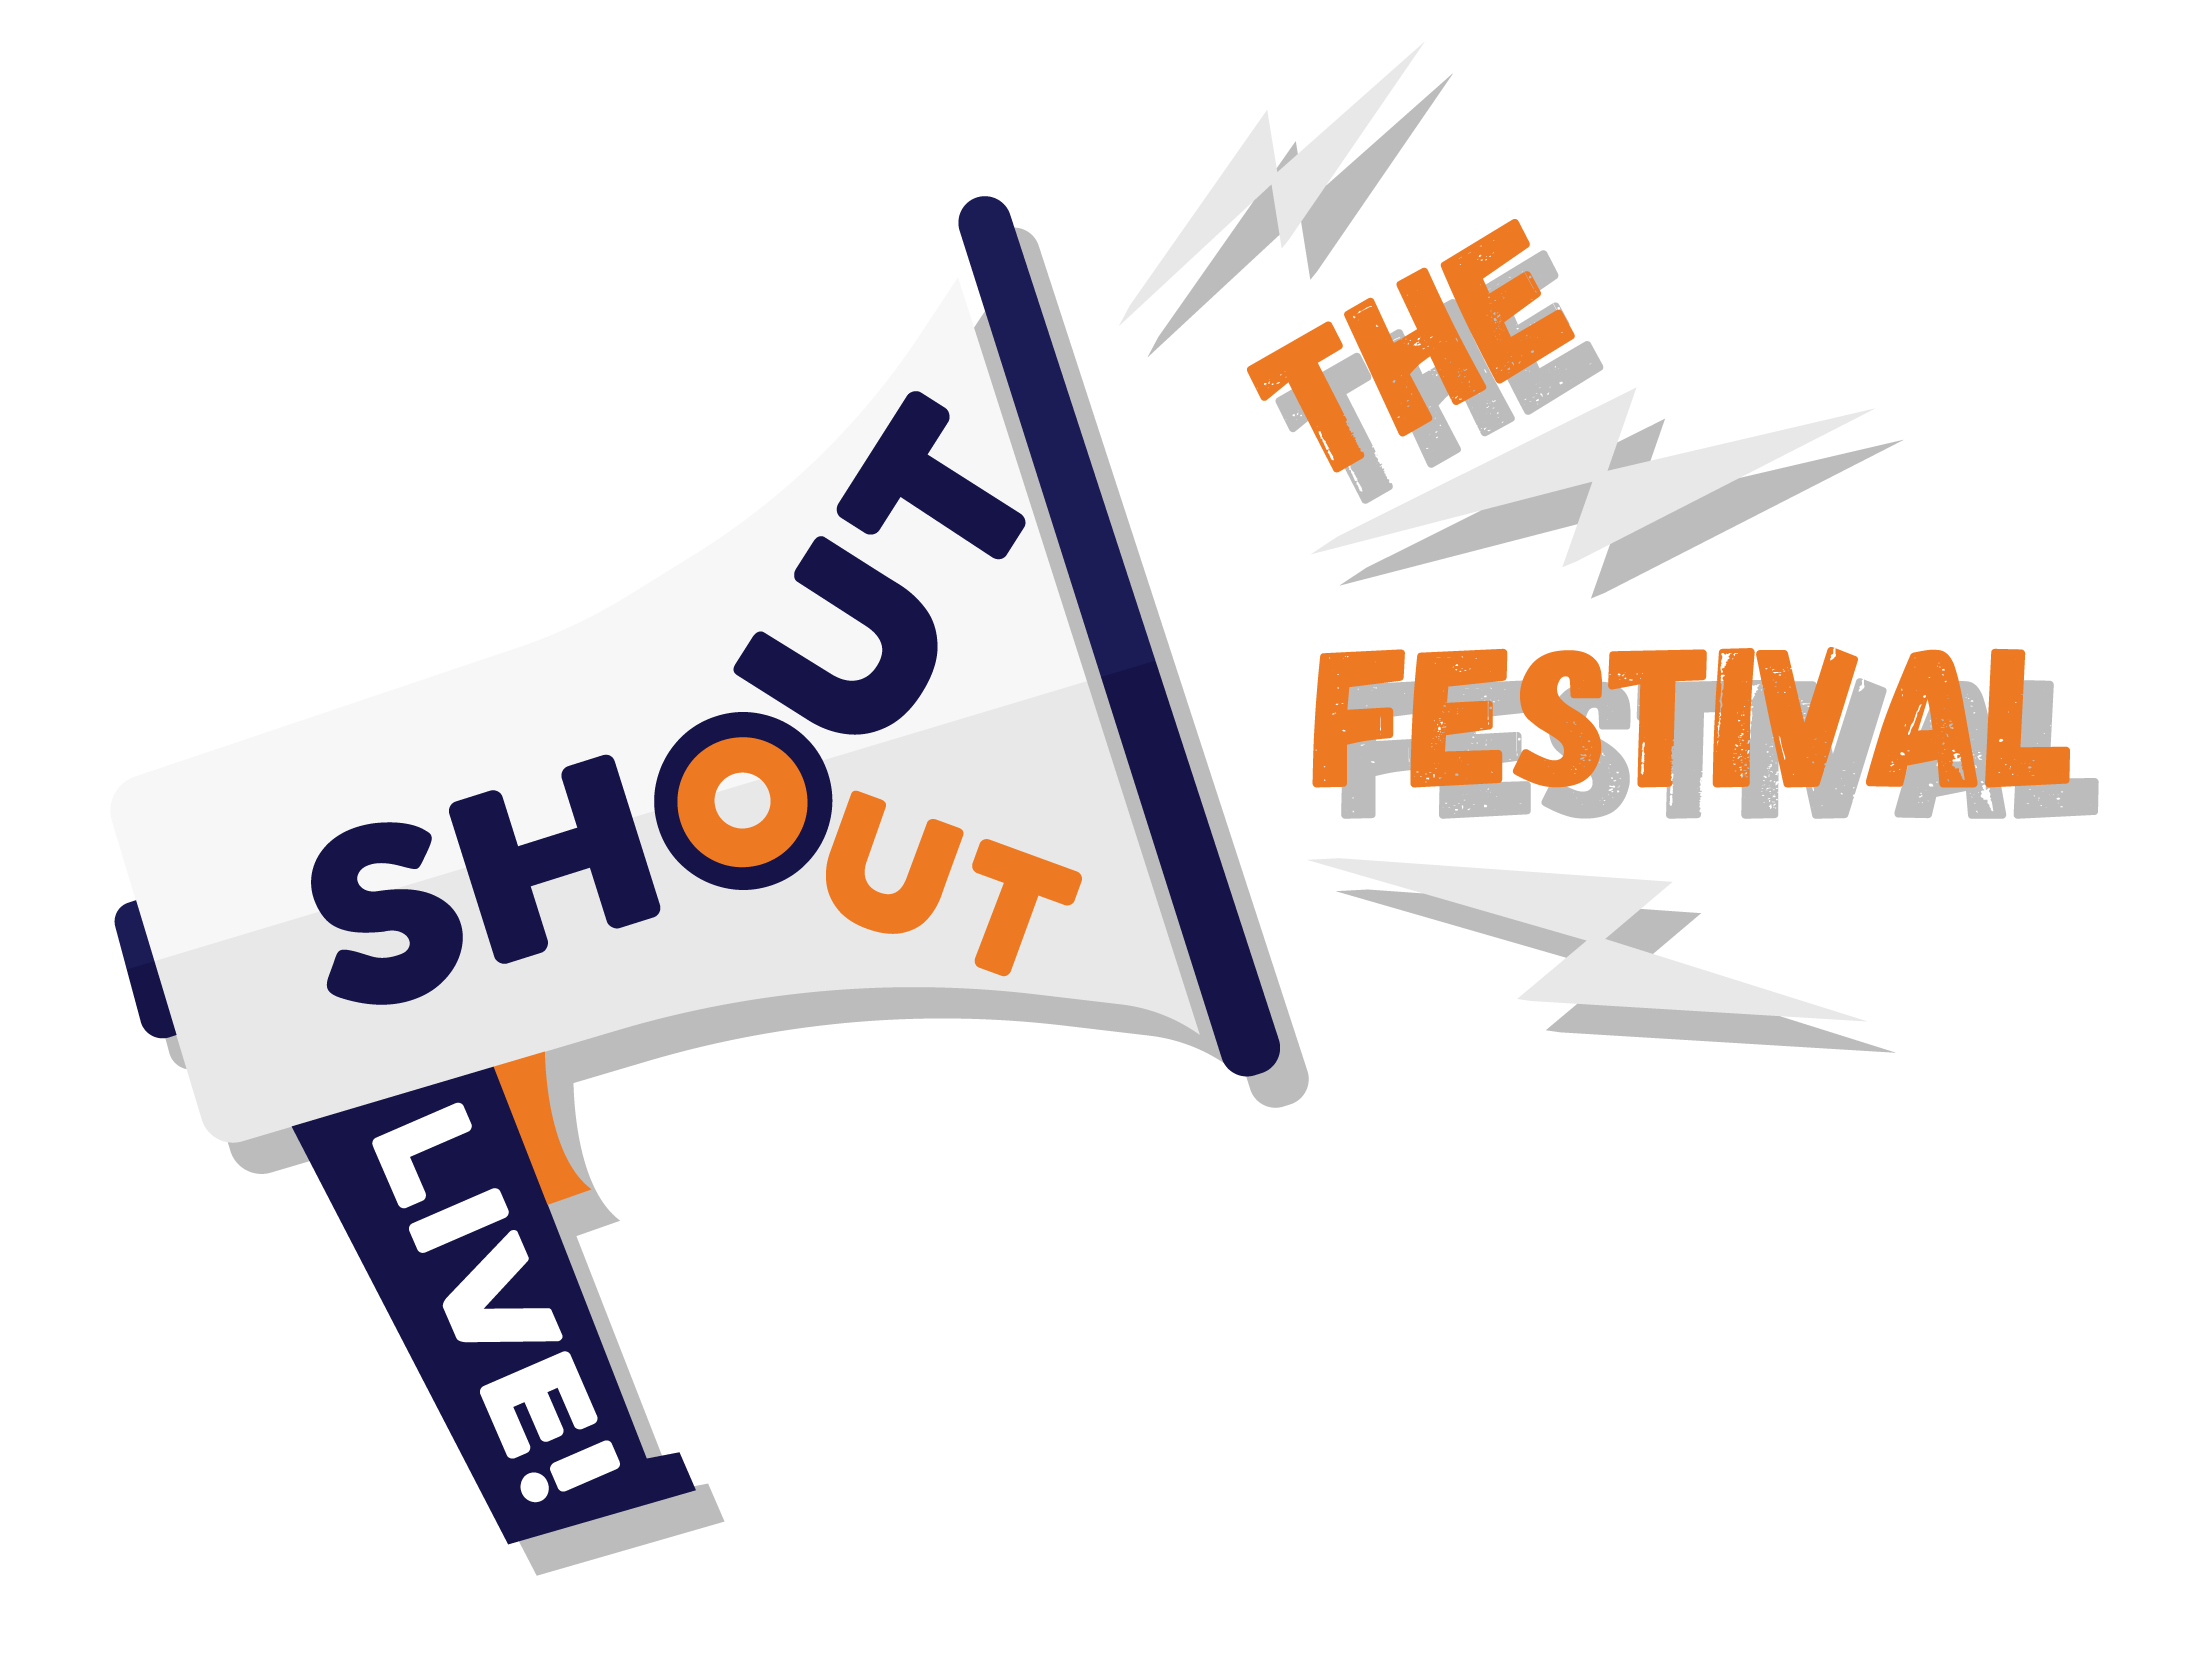 ShoutOut Live: The Festival